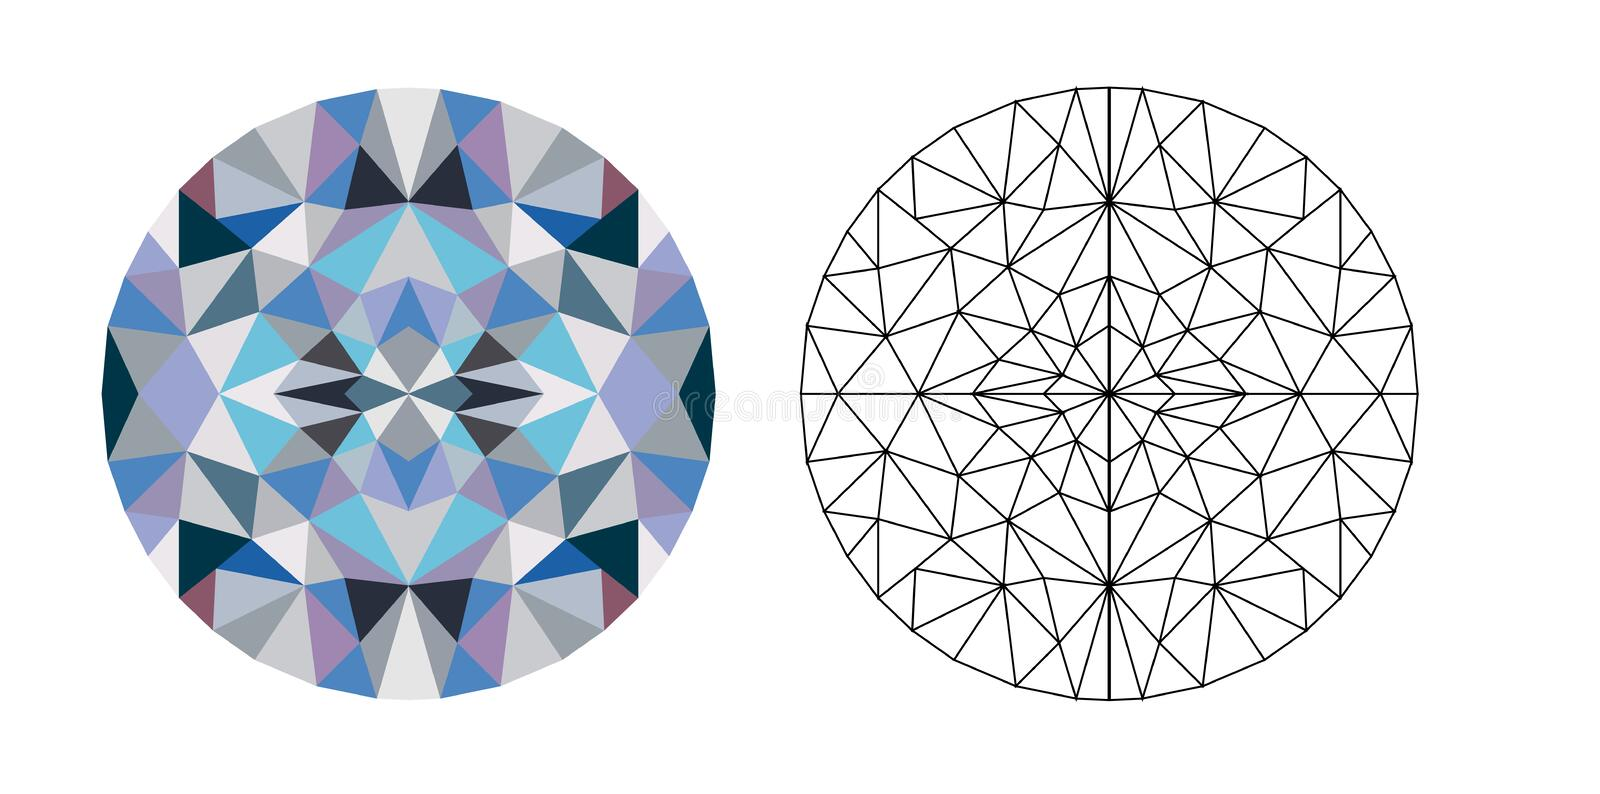 Glass, low poly circle, vector illustration royalty free illustration